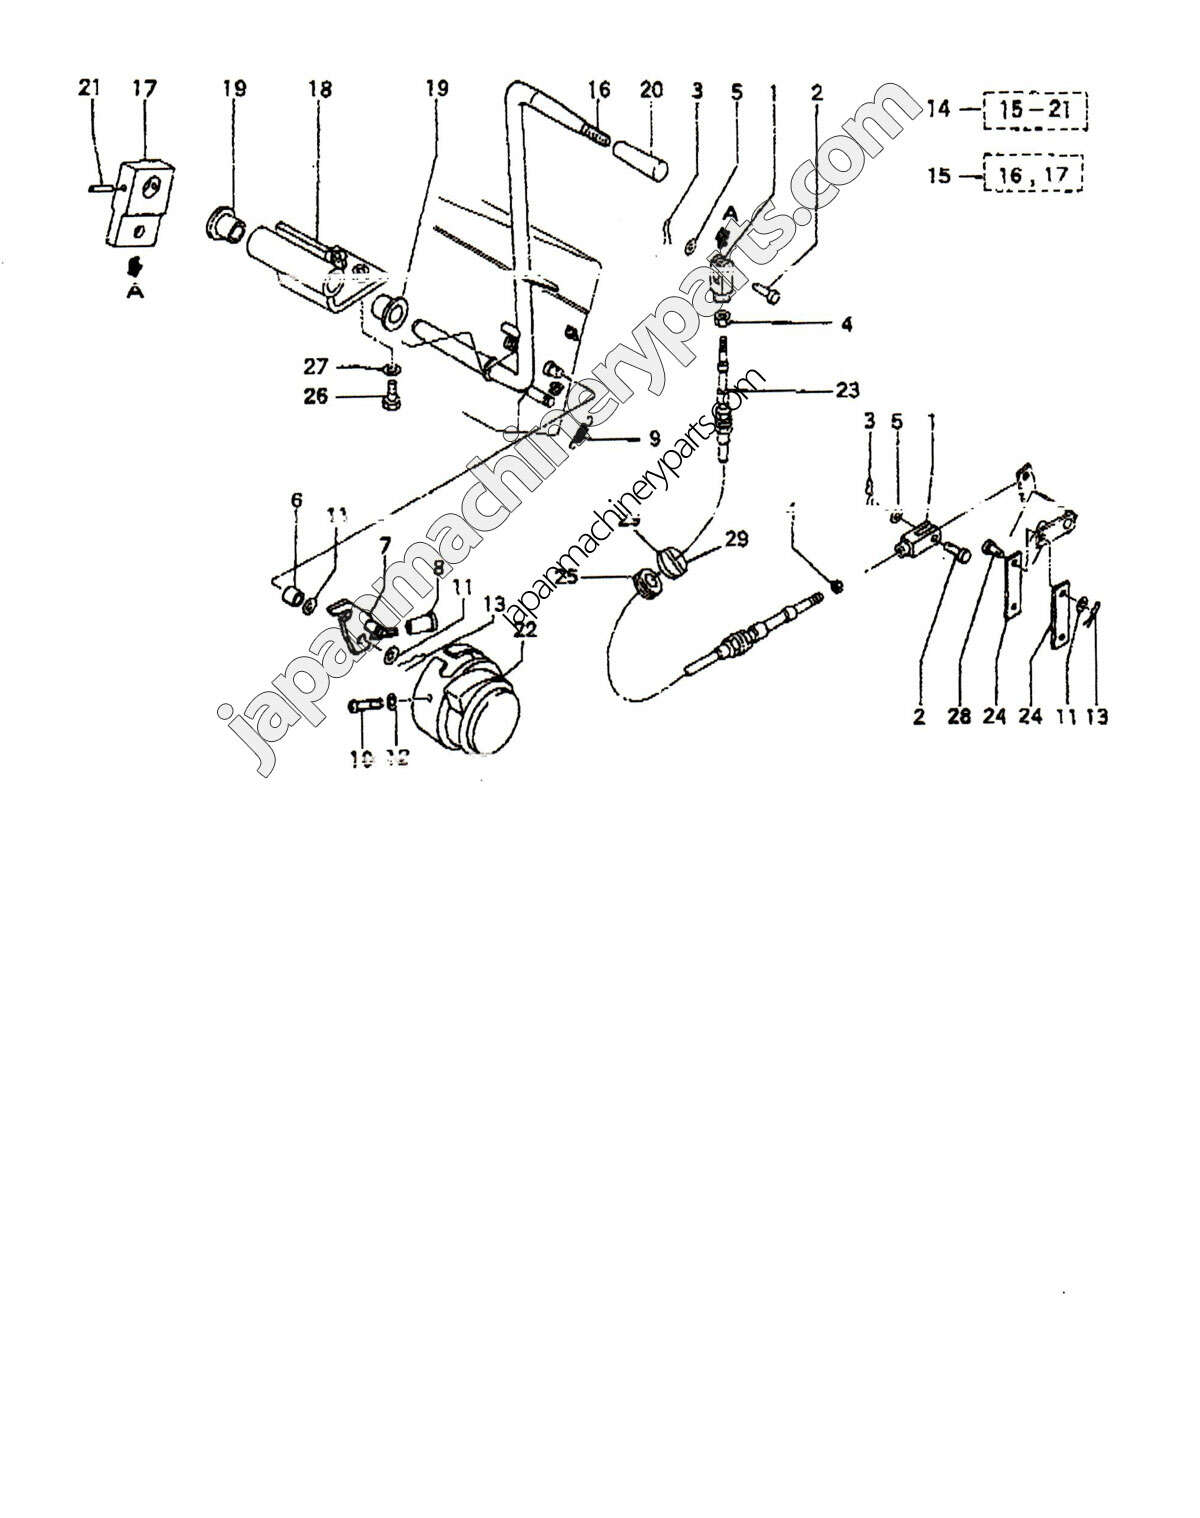 Mitsubishi Endeavor Rear Suspension Diagram